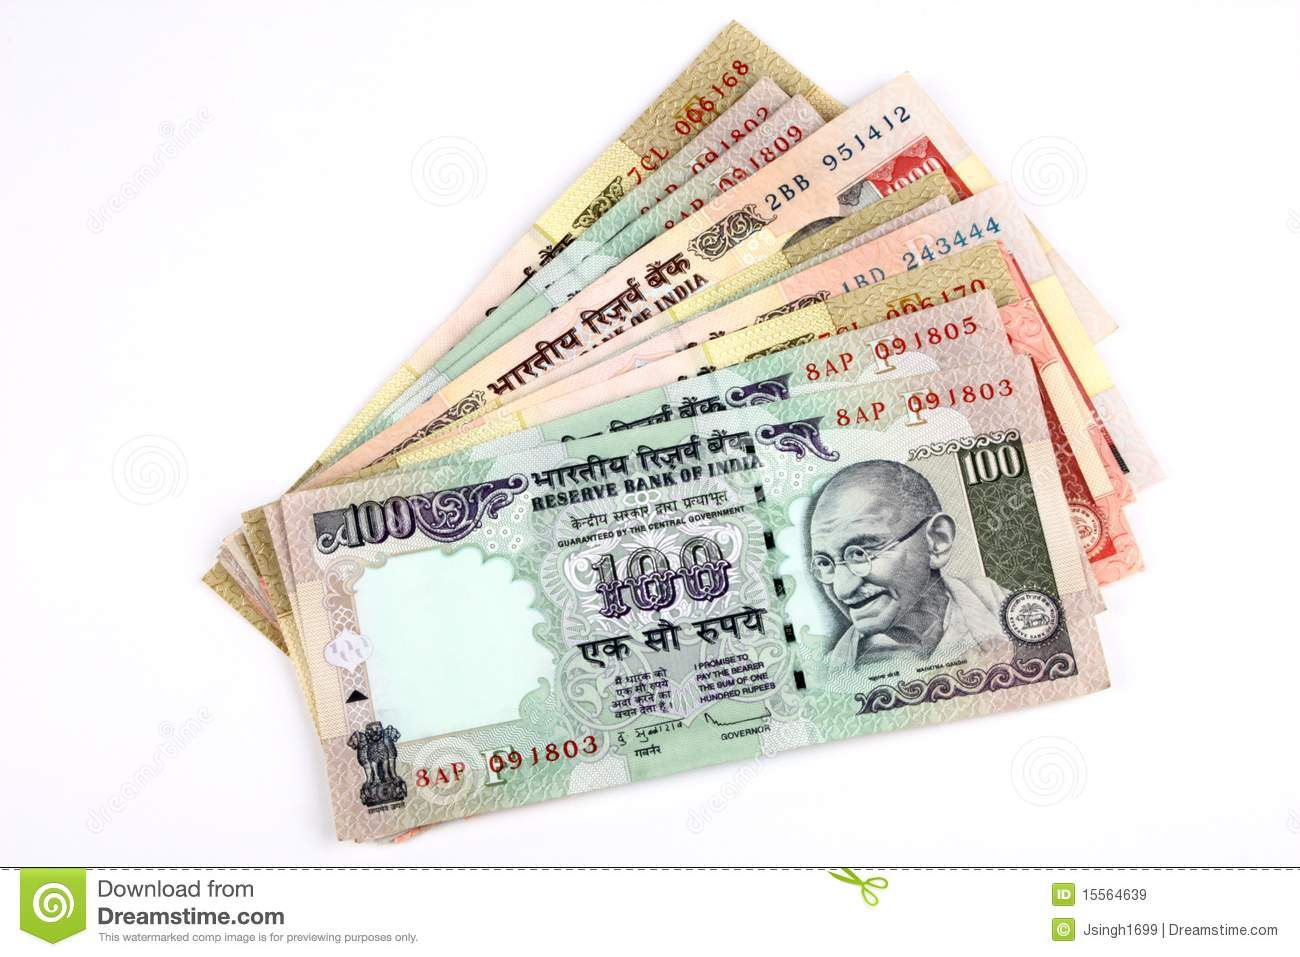 project on use of plastic money in indian shopping Contemporary indian writing plastic money or polymer money, made out of plastic plastic money was introduced in the 1950s and is now an essential form of.